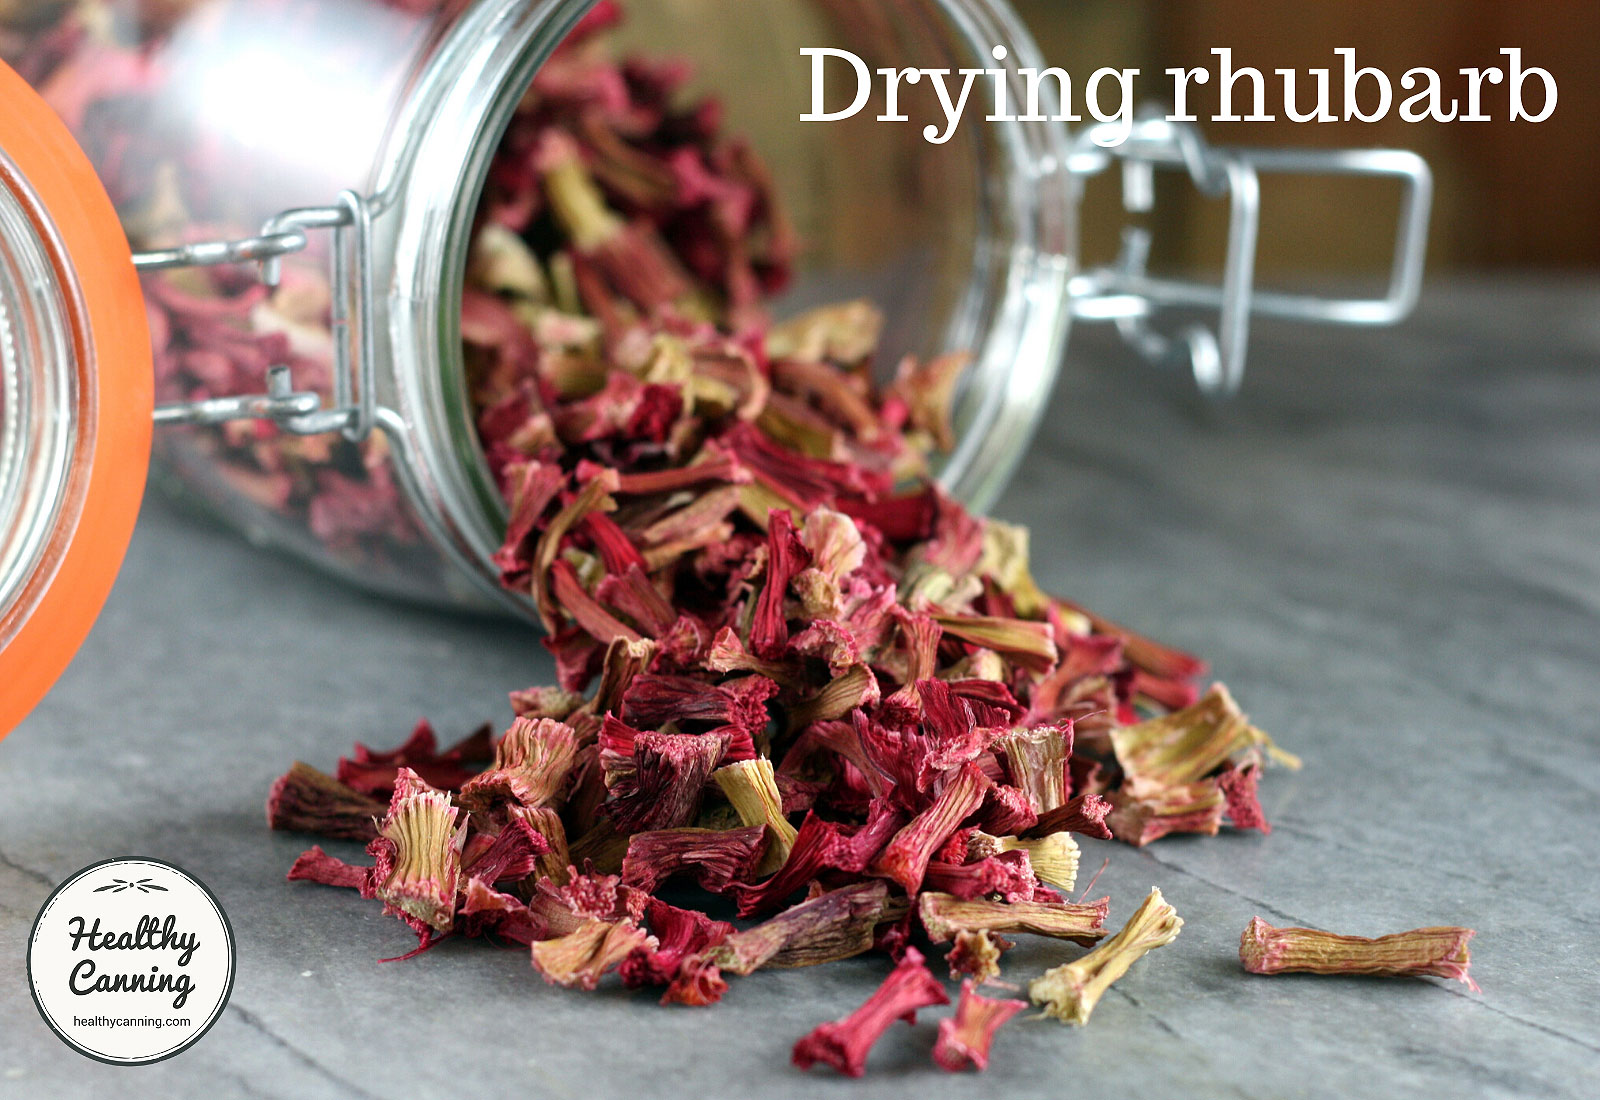 Dried rhubarb pieces